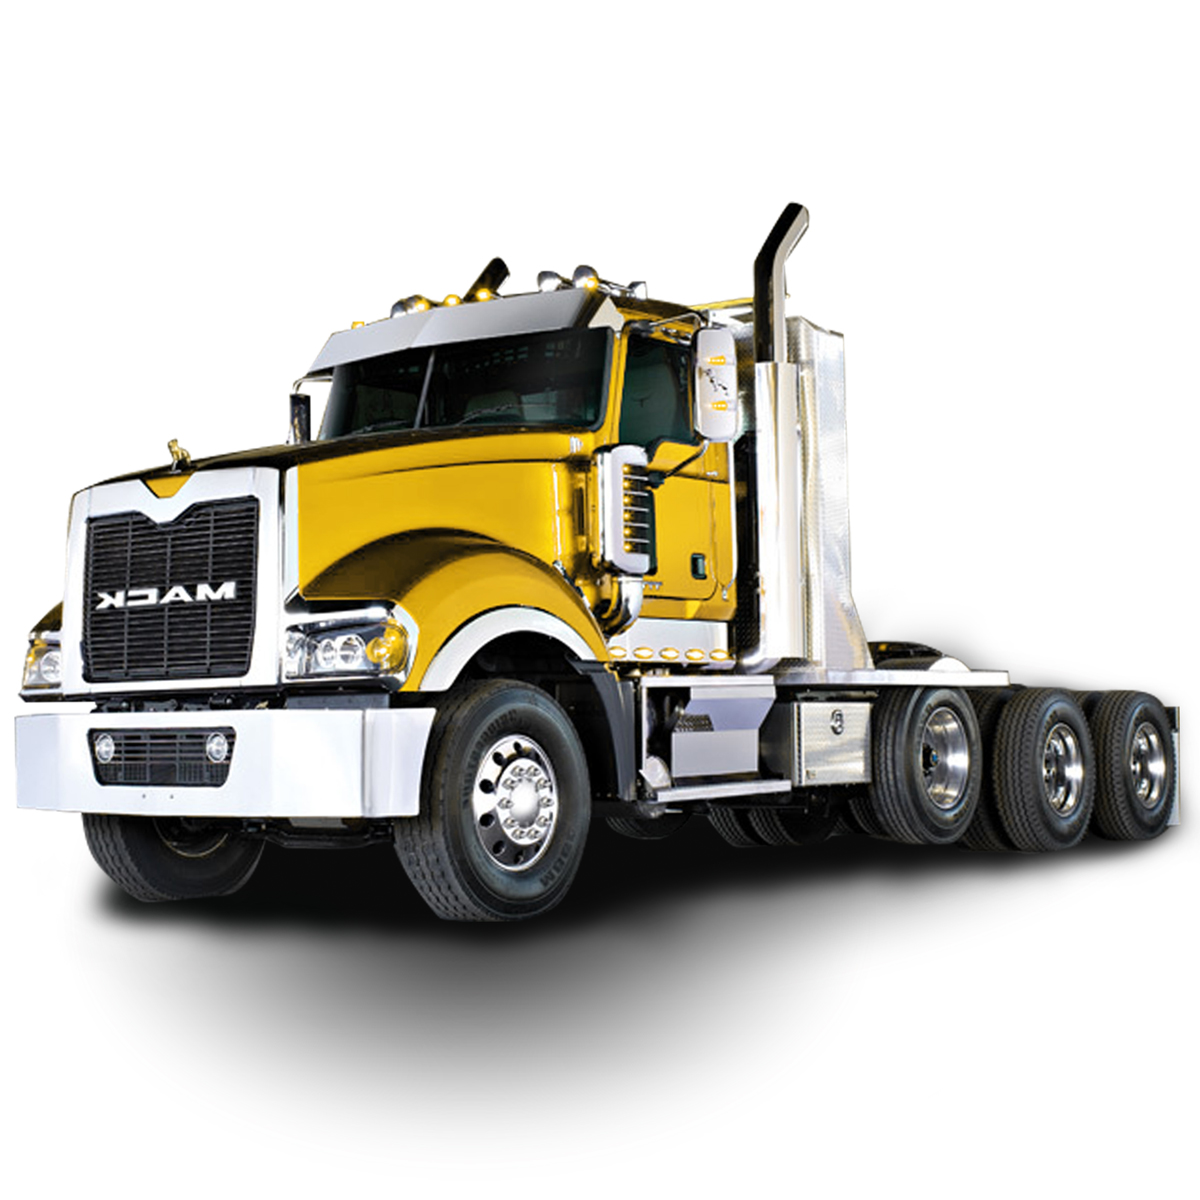 Western Star 4900 >> Mack - Browse by truck brands